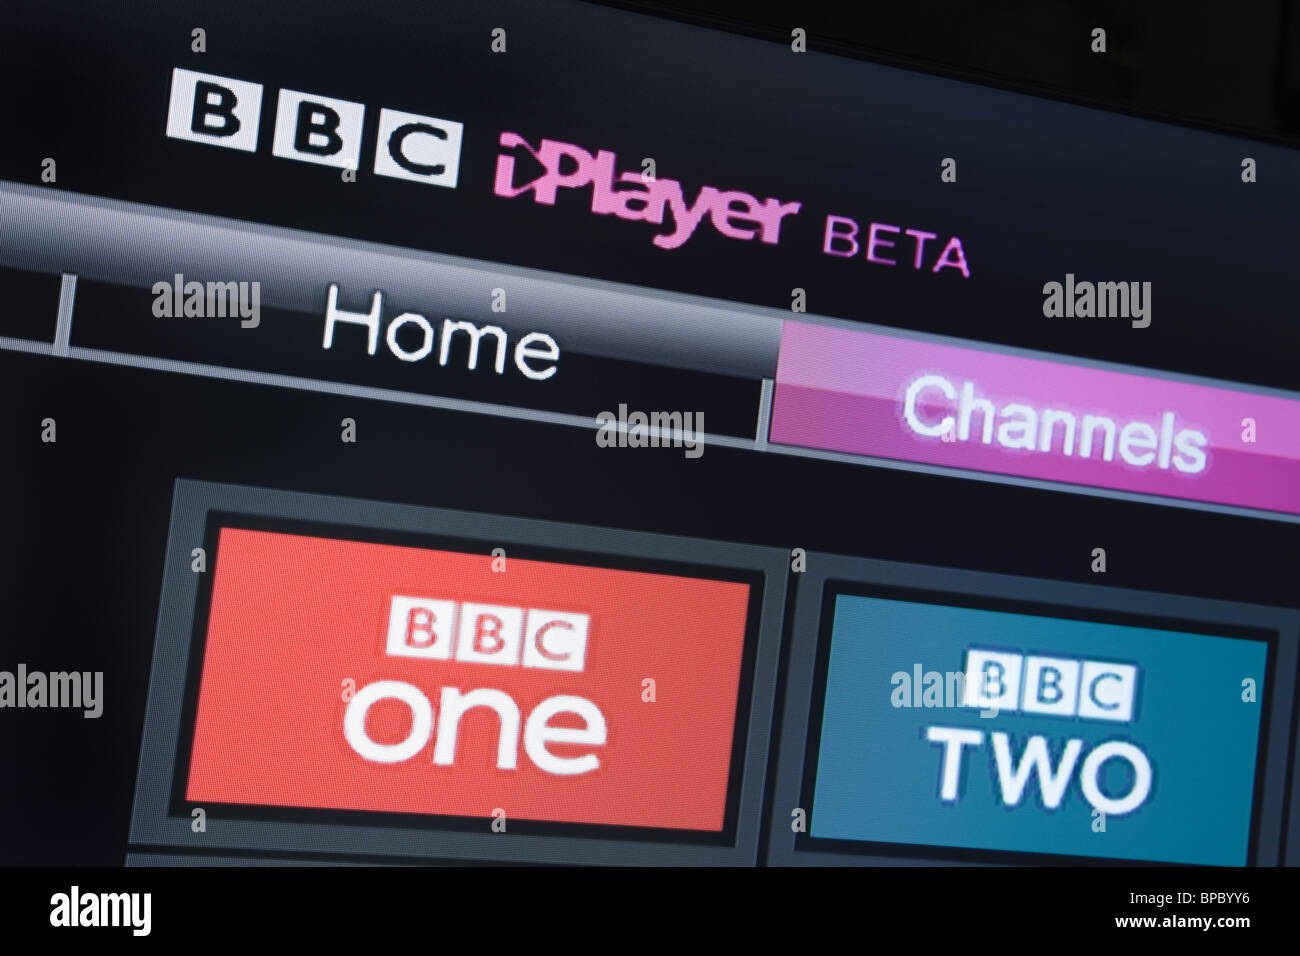 UK, Europe. Close-up screenshot of a modern television showing BBC iPlayer beta channels on Freesat screen - Stock Image